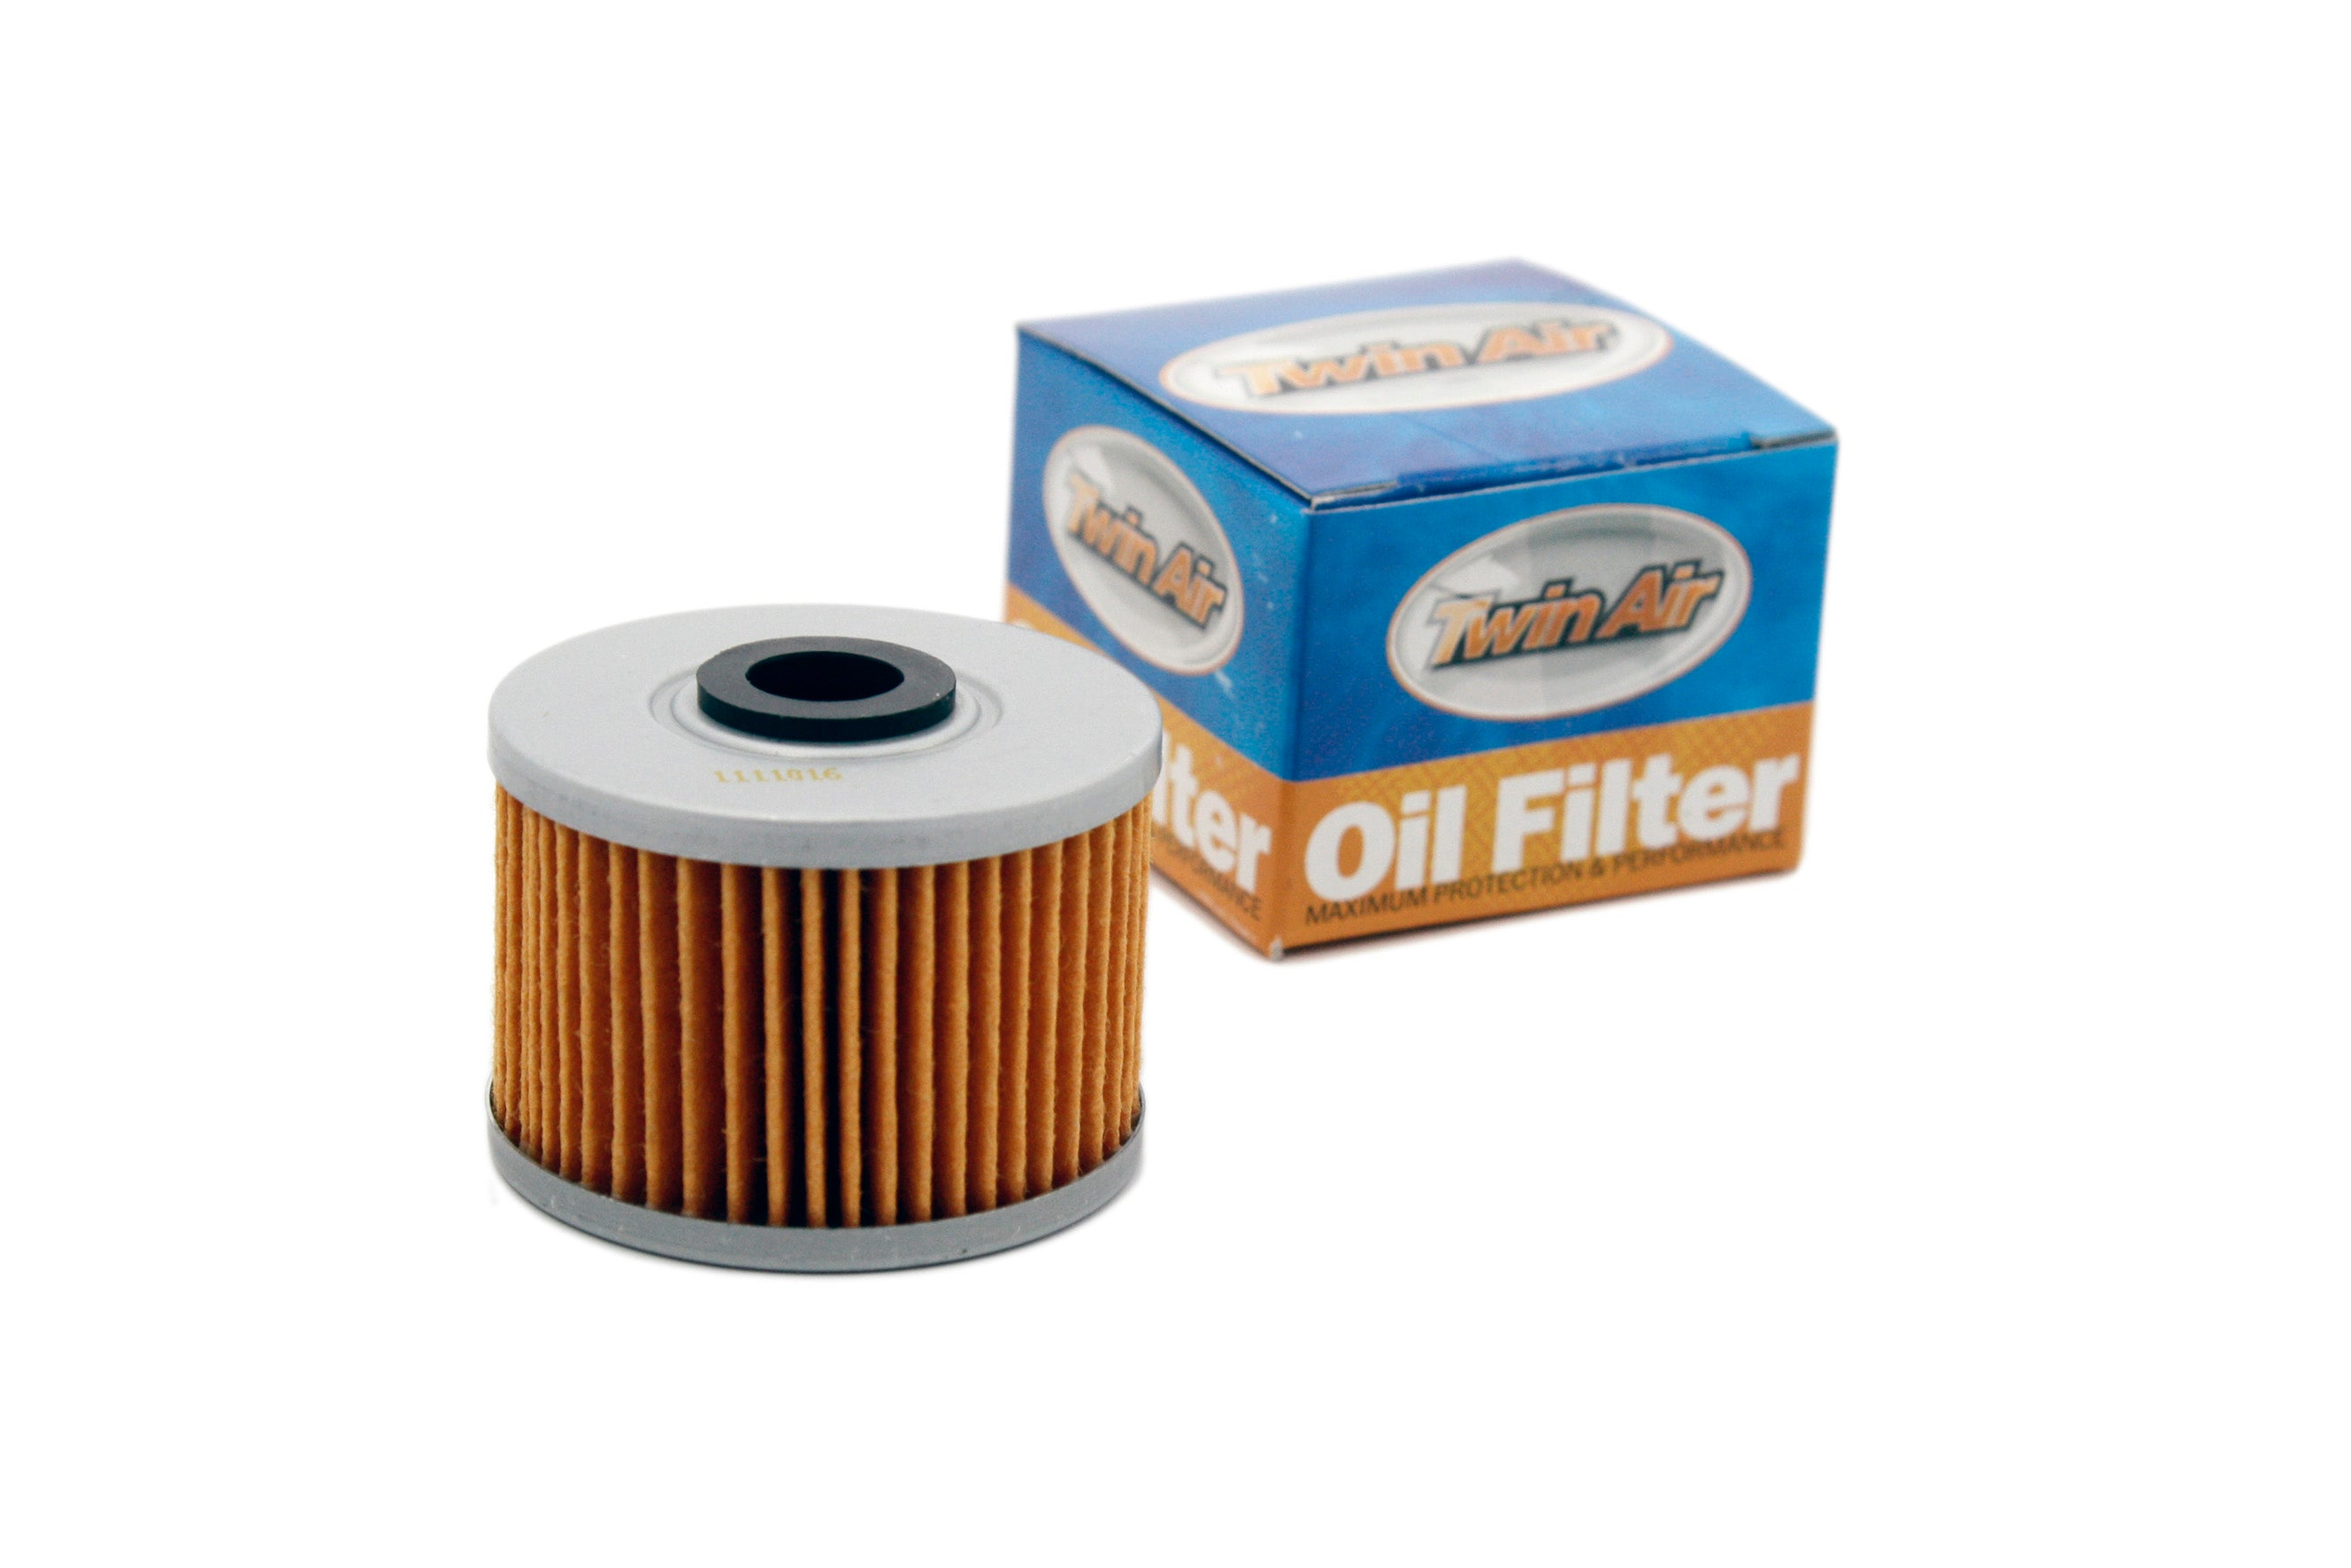 Twin Air Oil Filter Honda/Kawasaki # 140001